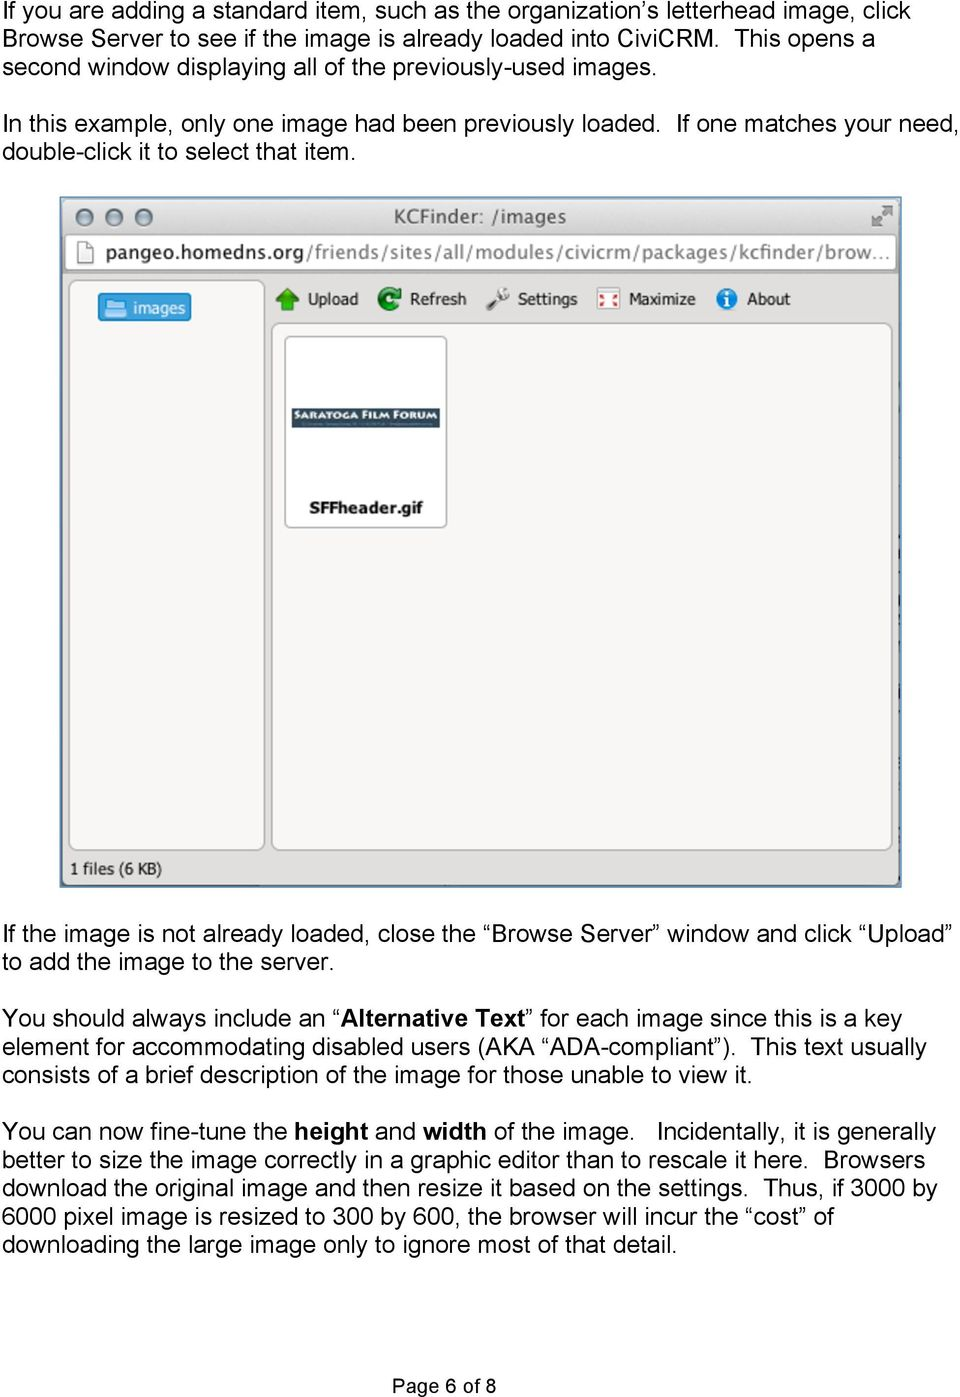 If the image is not already loaded, close the Browse Server window and click Upload to add the image to the server.